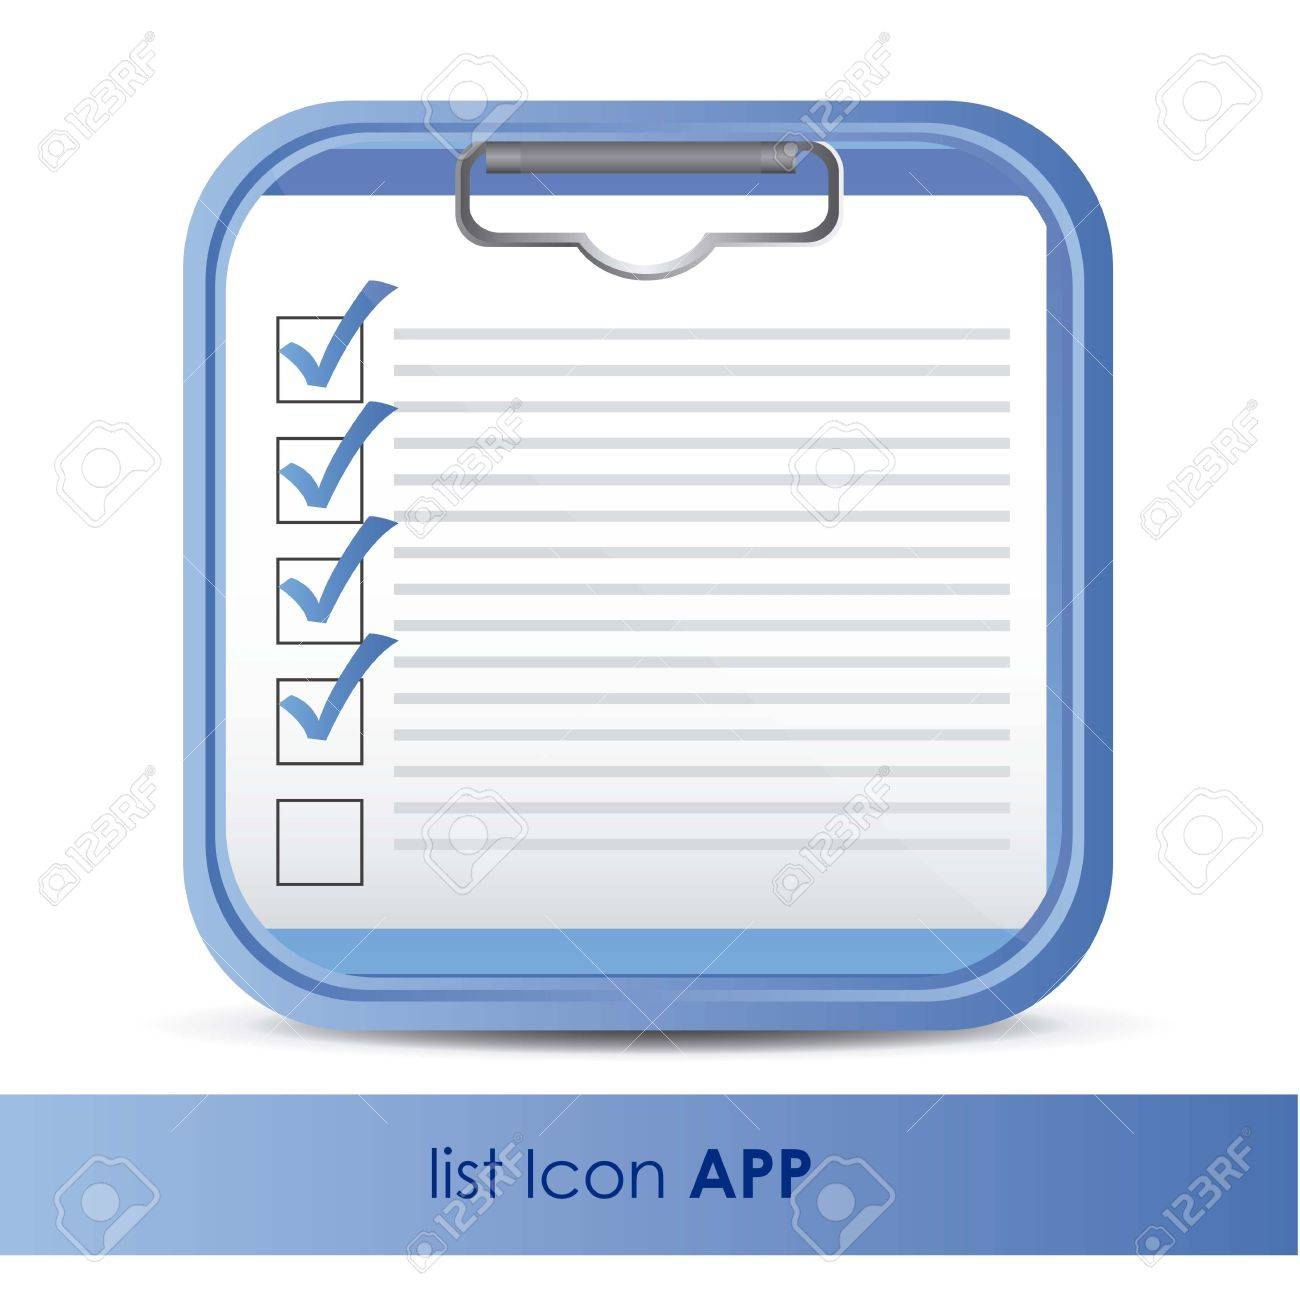 illustration of icon for application of questions or data, vector illustration - 15563850